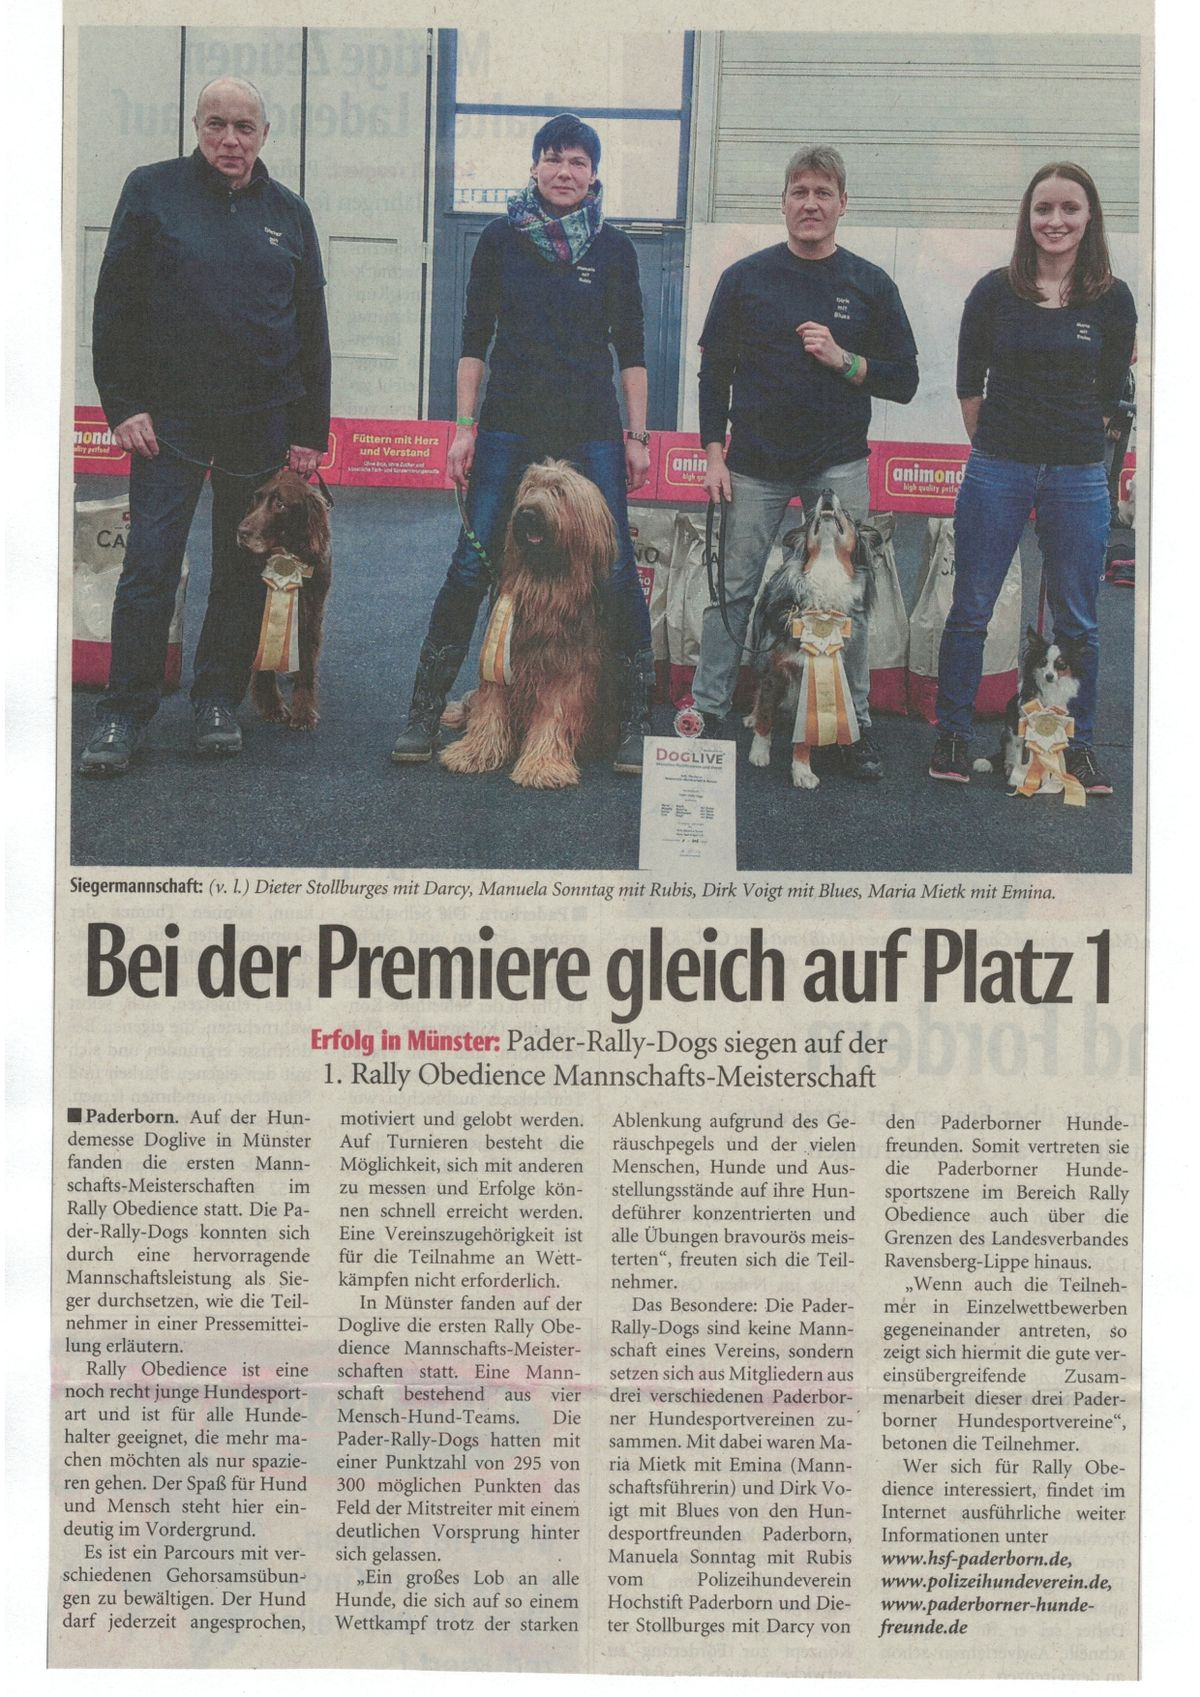 Pader-Rally-Dogs ROMM Münster - NW 22.01.16